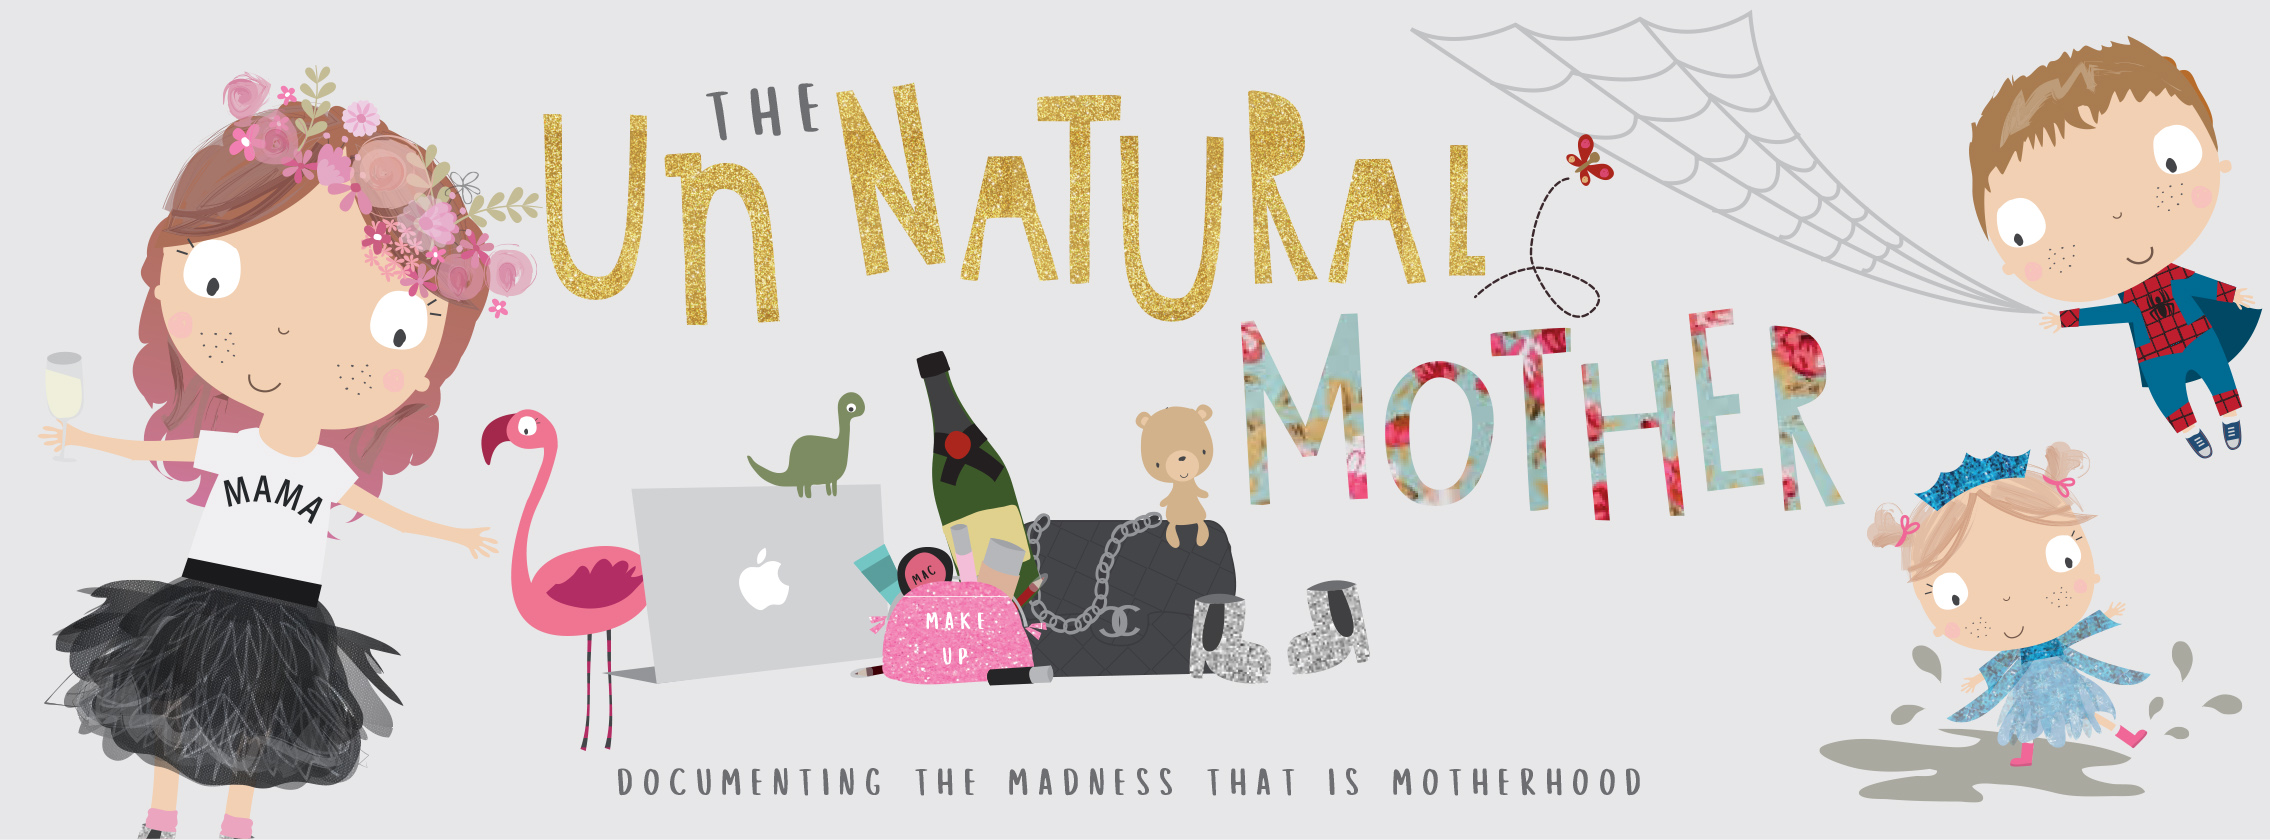 The UnNatural Mother | UK Lifestyle Blog | Documenting The Madness That Is Motherhood